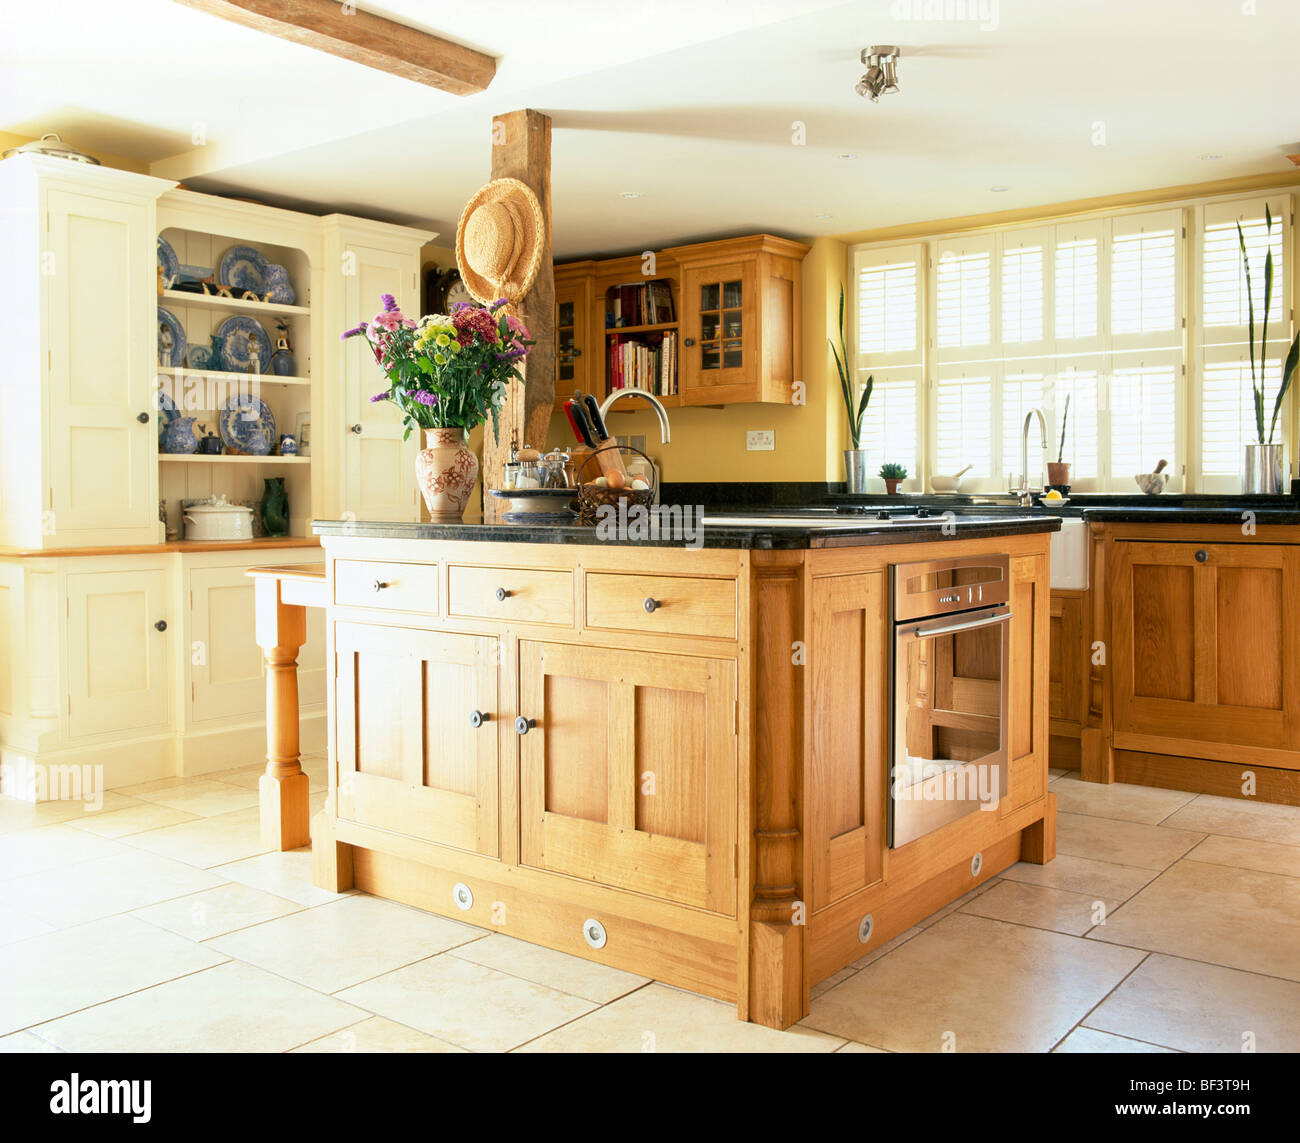 Pale wood island unit with sink and oven in traditional country ...